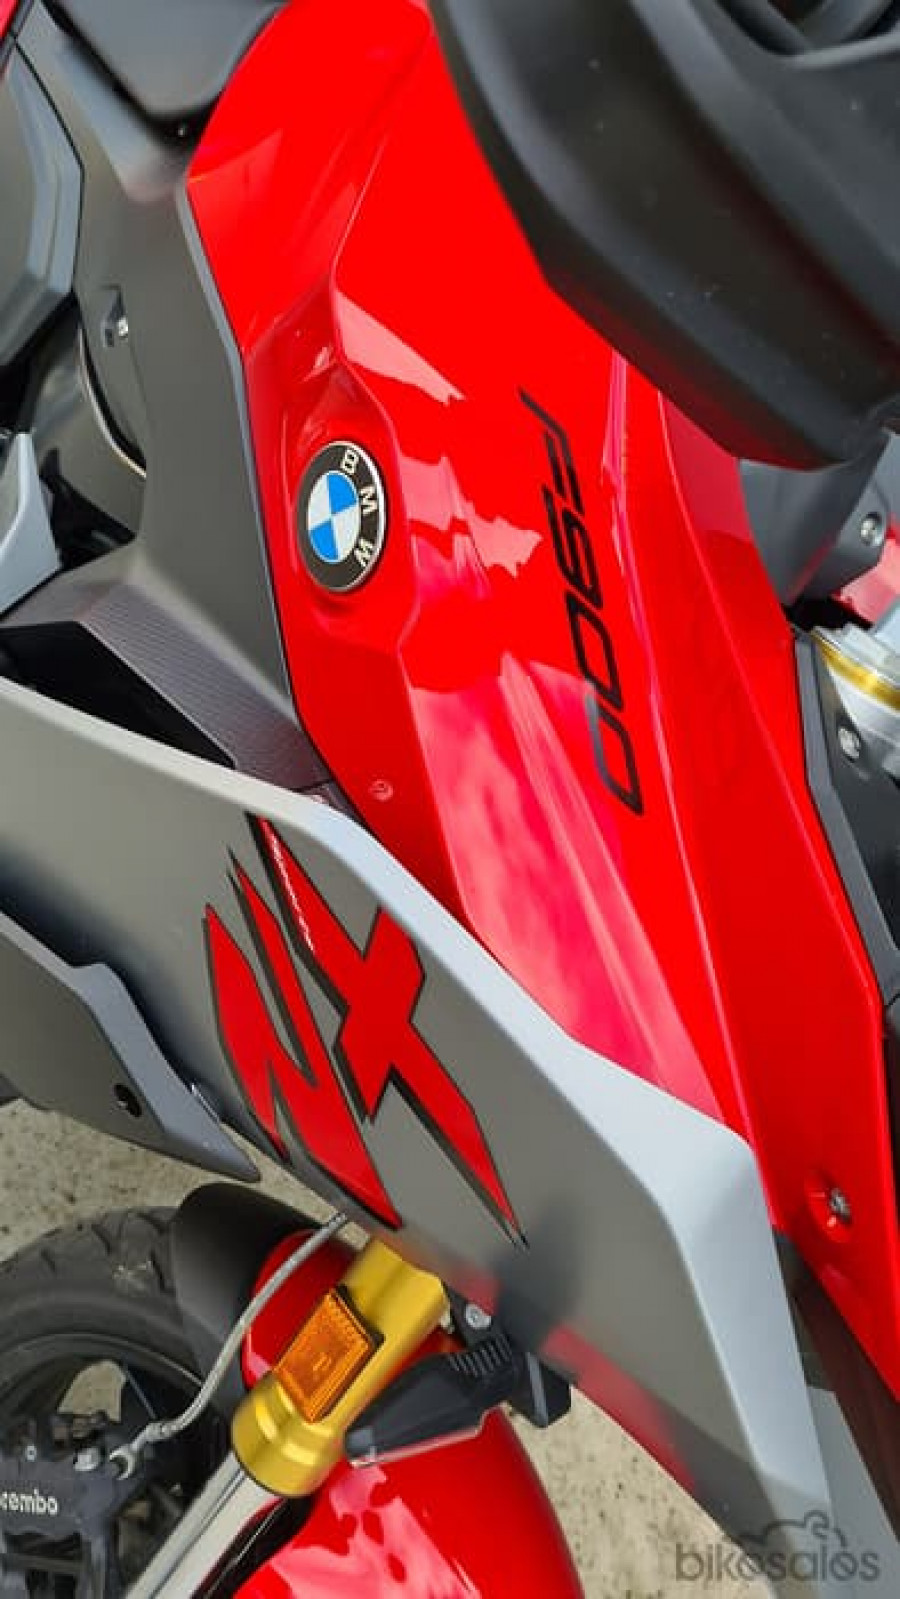 2020 BMW F 900 F XR Tour Motorcycle Image 5